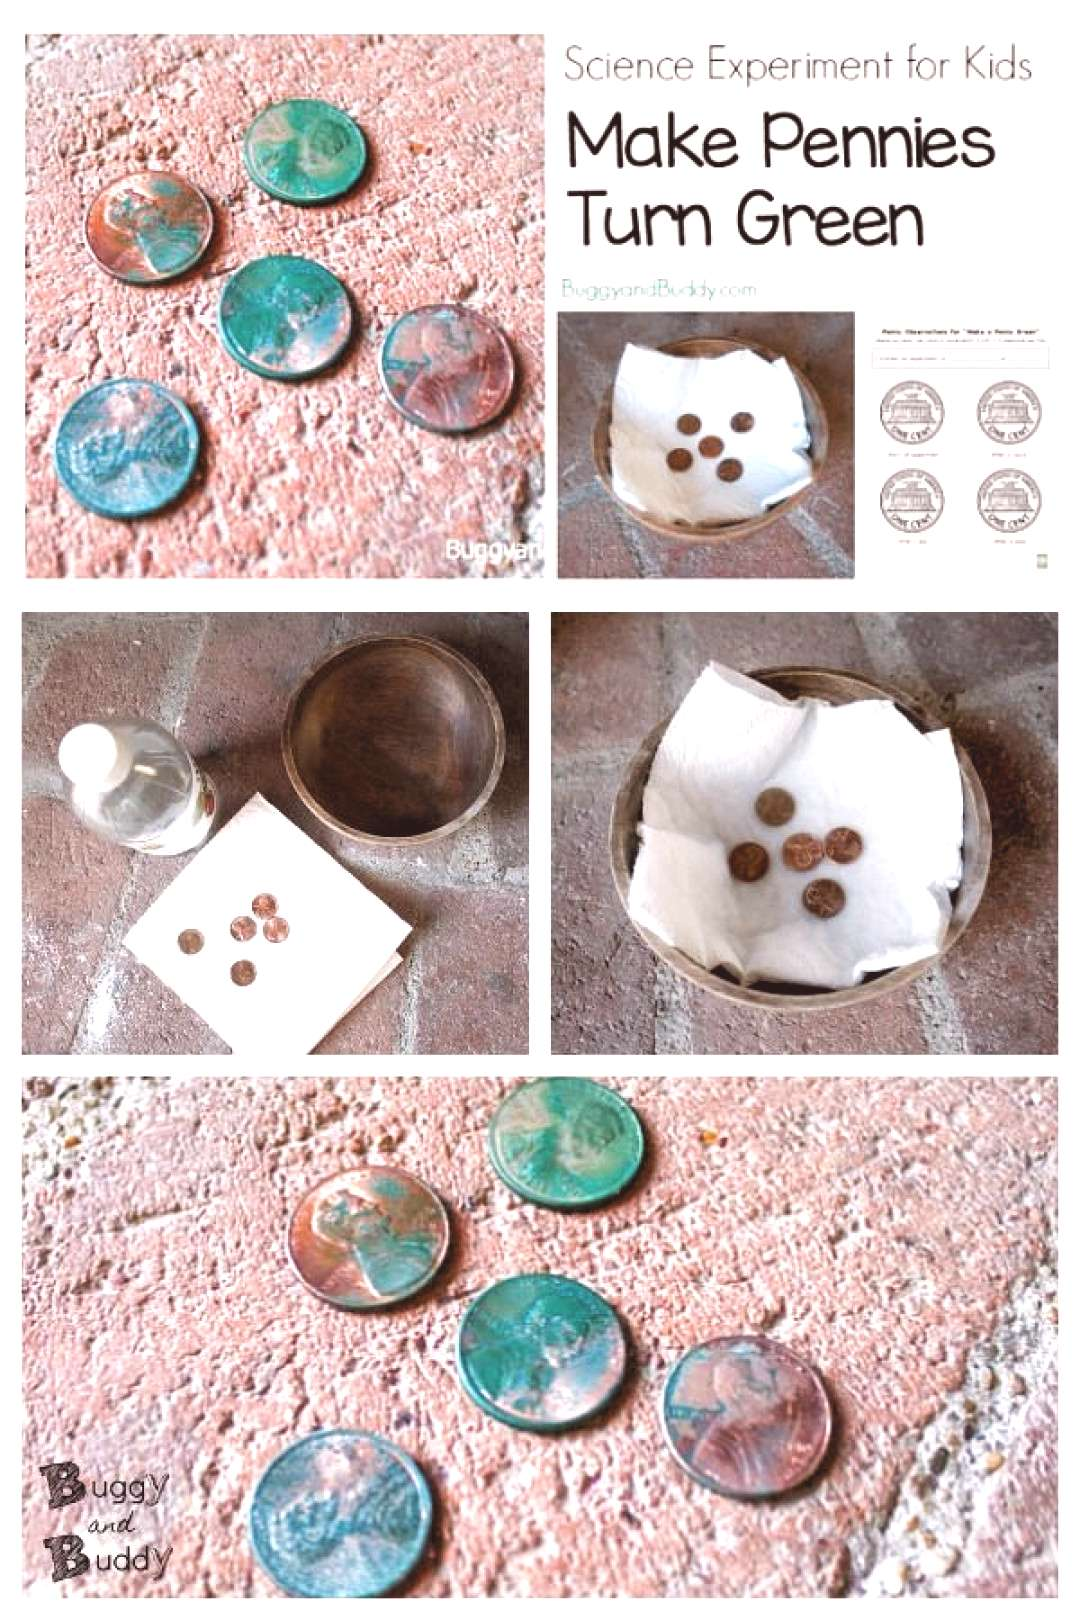 Science Experiment for Kids Explore a chemical reaction by making pennies turn green! A fun scienc